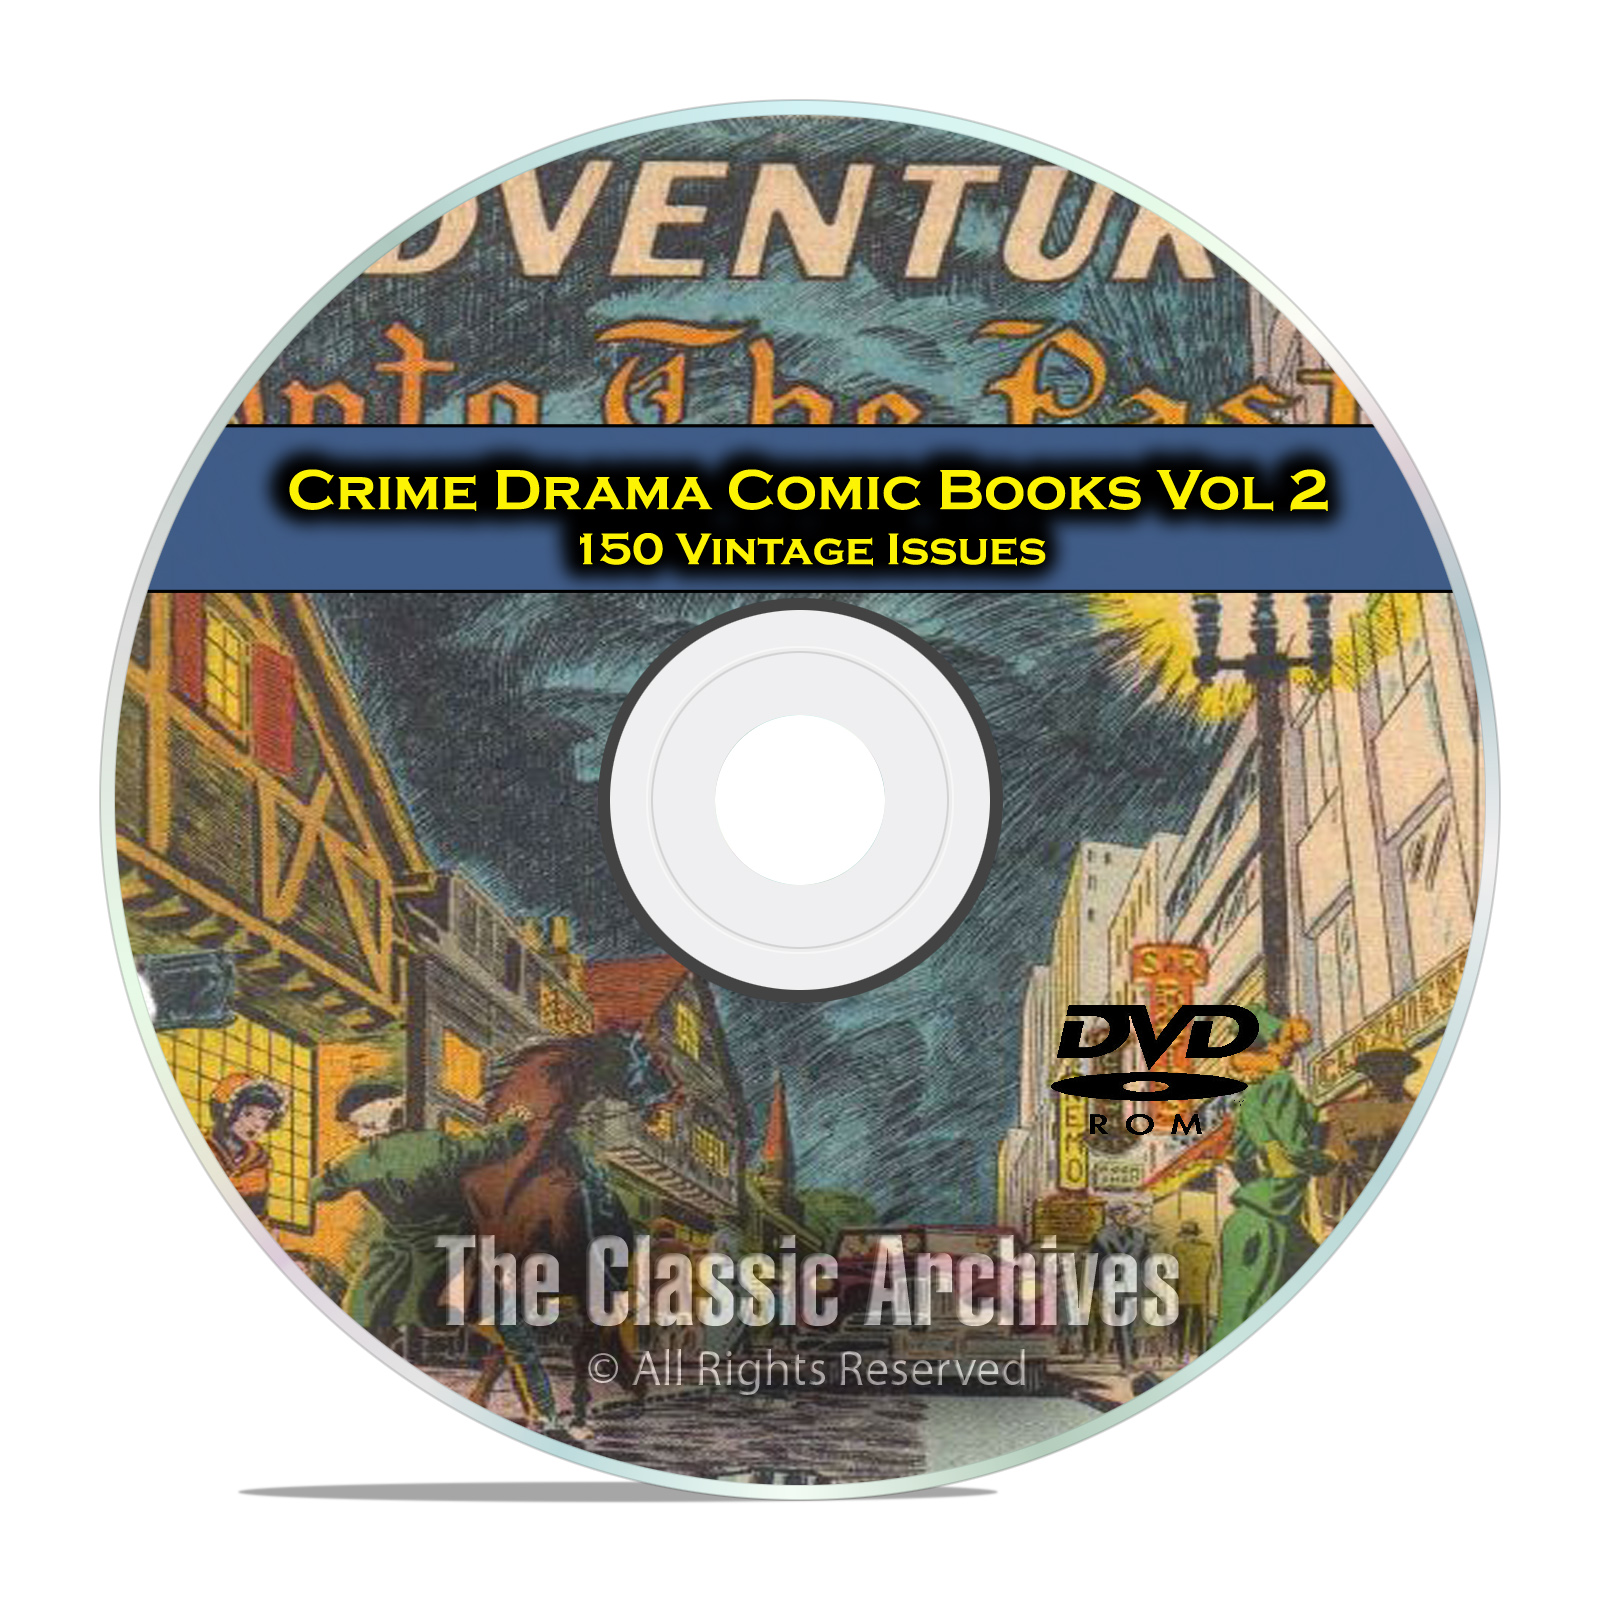 Crime Drama, Suspense, Vol 2, Brenda Starr, Famous, Golden Age Comics DVD